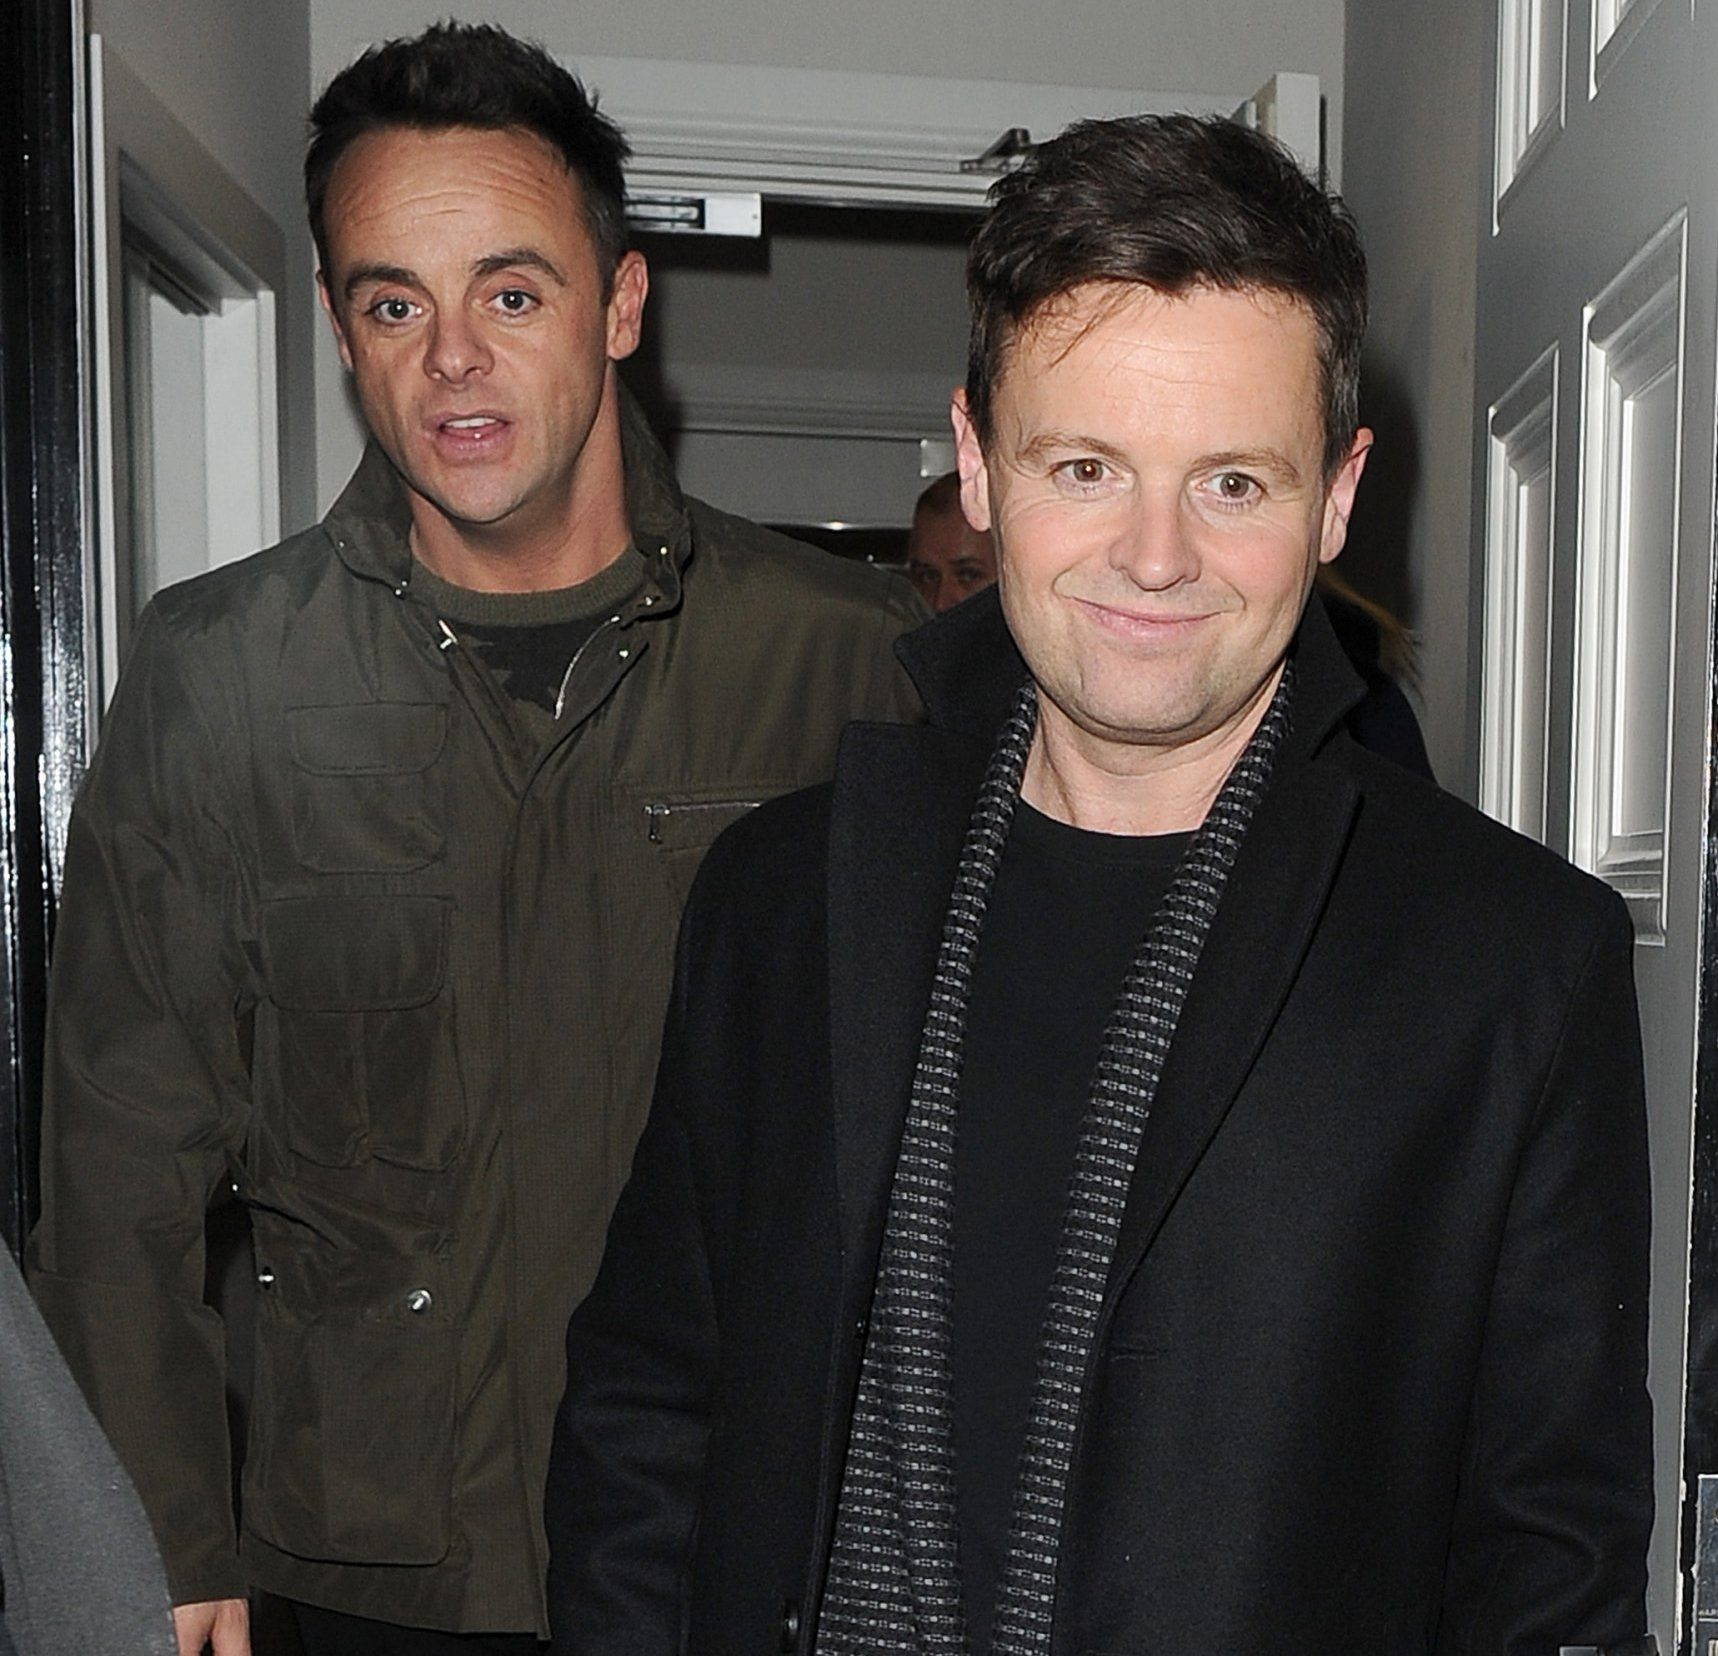 22 January 2019. Celebrities leaving the Britain's Got Talent Auditions, held at the London Palladium. Simon Cowell told photographers he was mortified at hearing the results of the NTA awards. Ant and Dec accidentally walked into a short woman, as they left the venue, with Ant jokingly asking her if she wanted to ride with them! Ants girlfriend Anne-Marie left in a separate car on her own. Pictured: Ant McPartlin, Declan Donnelly Credit: Will/Mark/GoffPhotos.com Ref: KGC-305/453